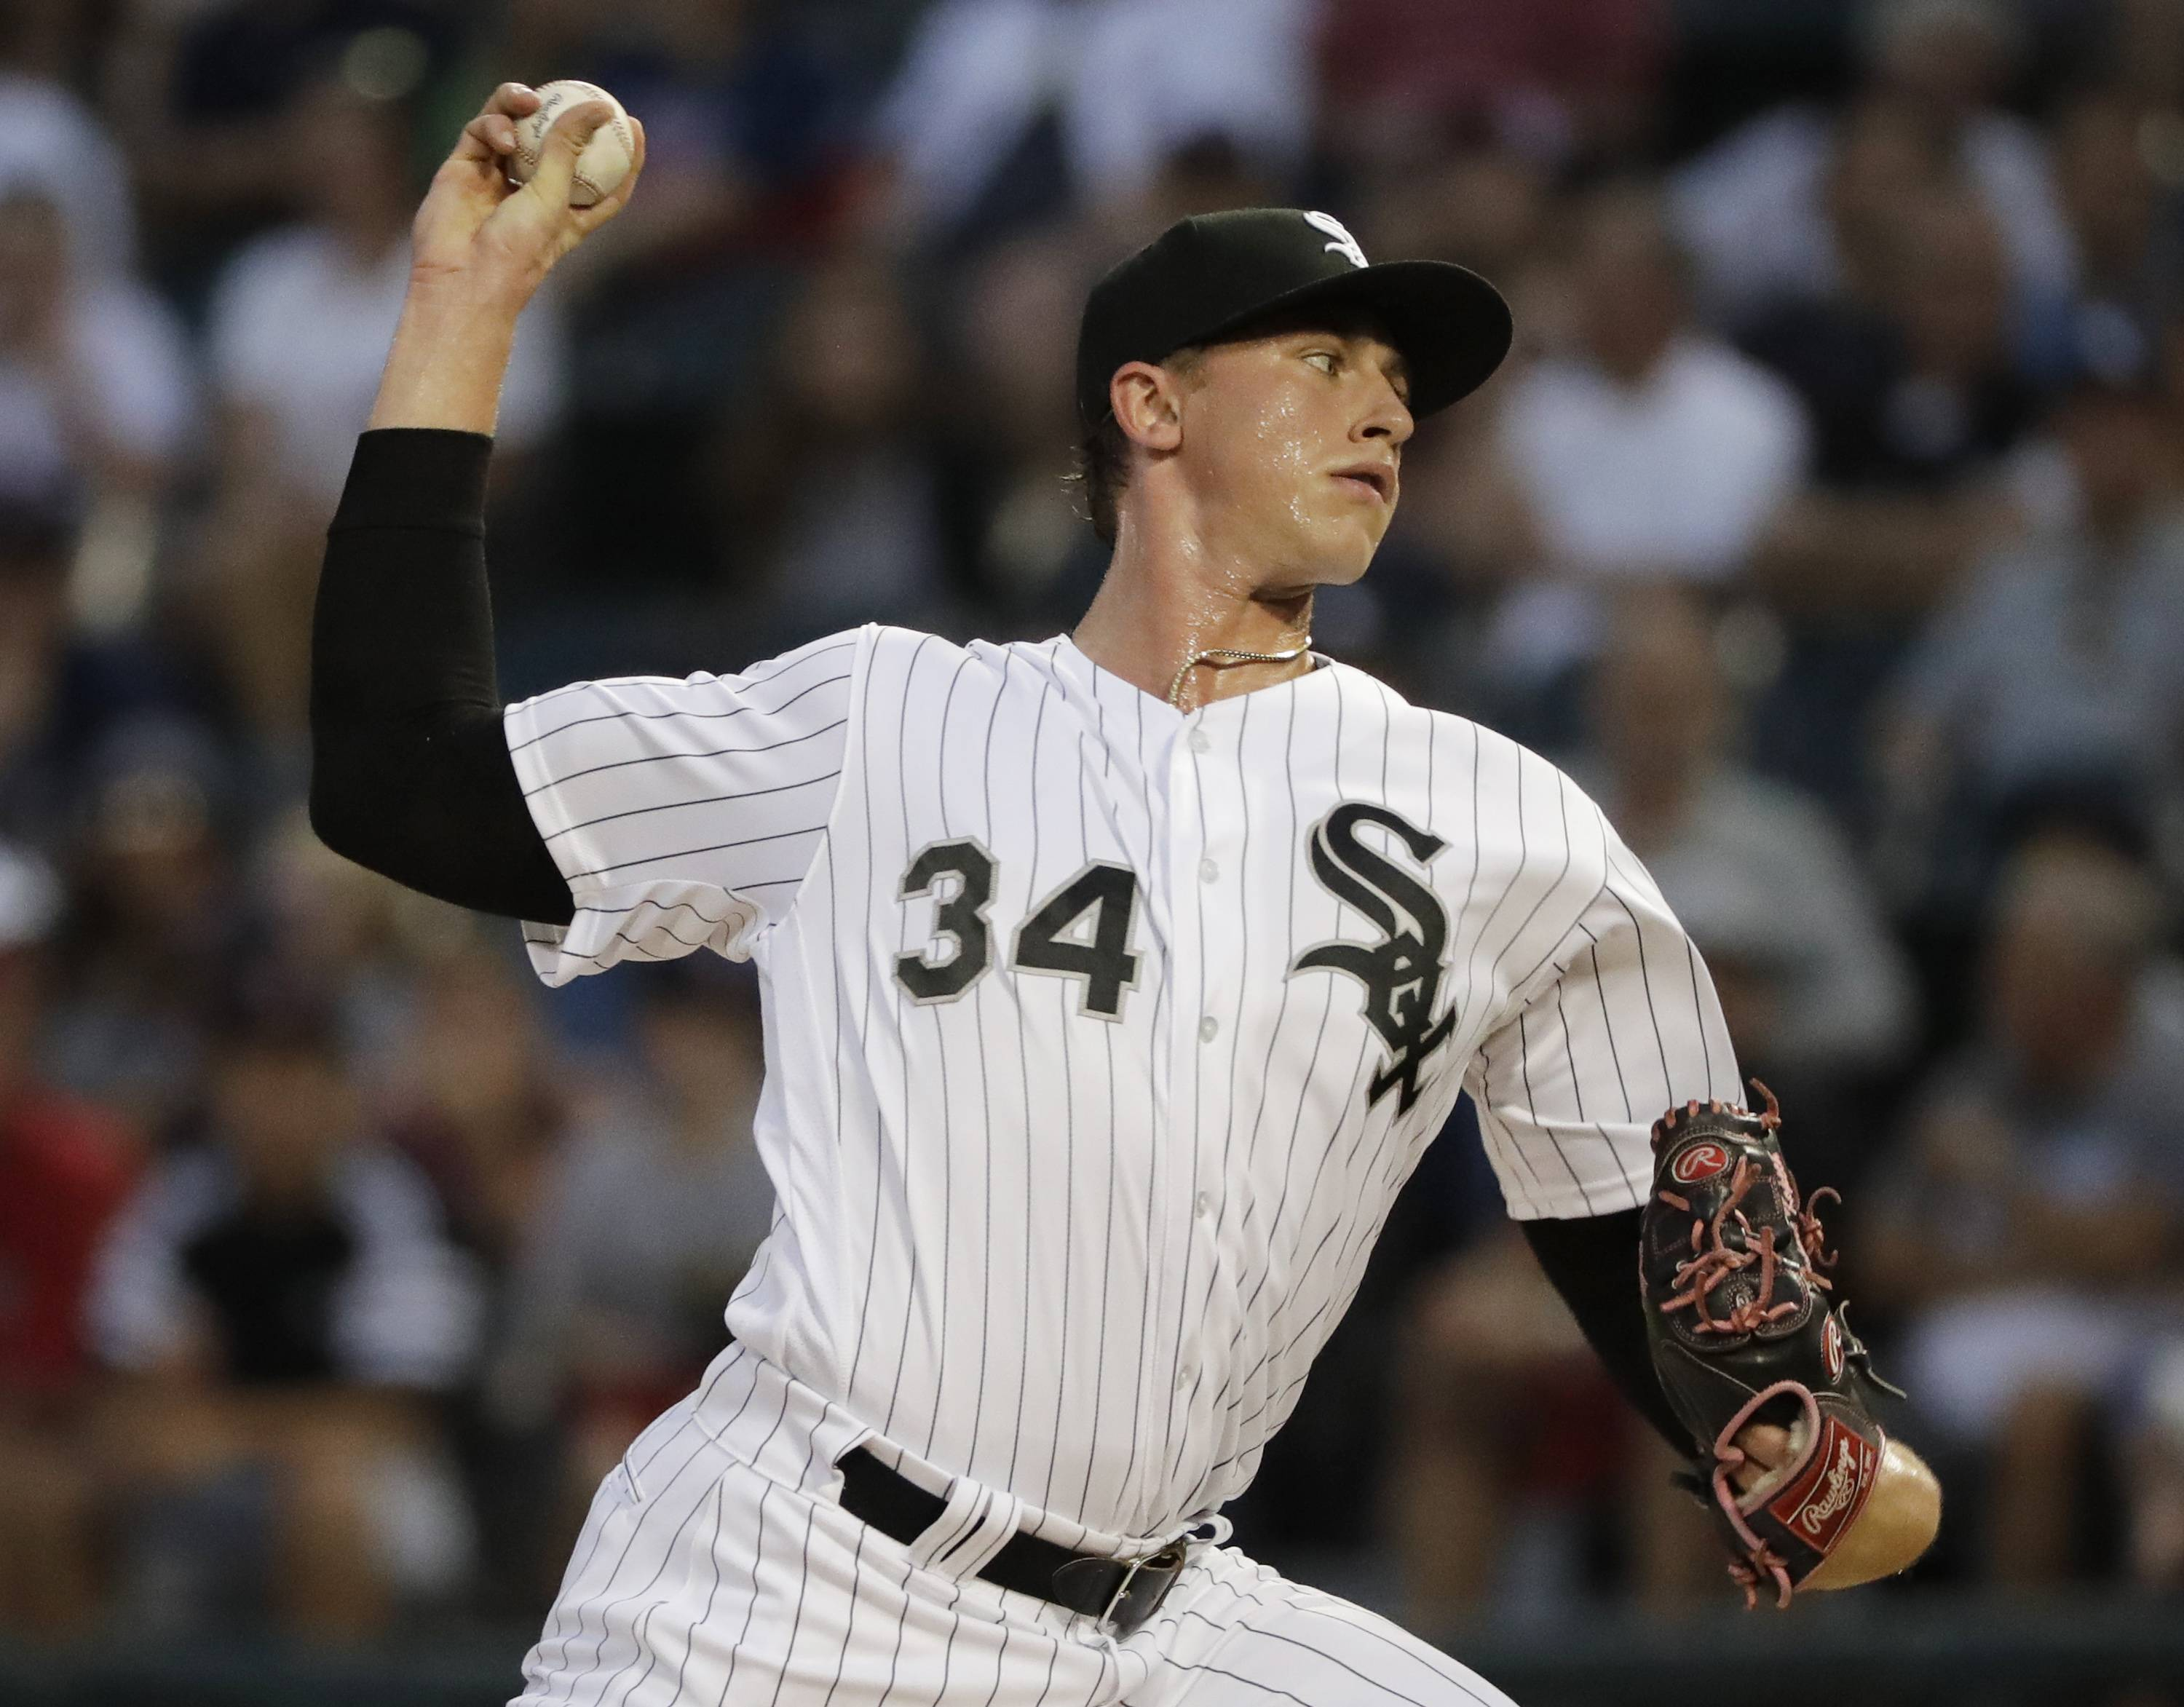 White Sox pitcher Michael Kopech had successful Tommy John surgery and is expected back in 2020.